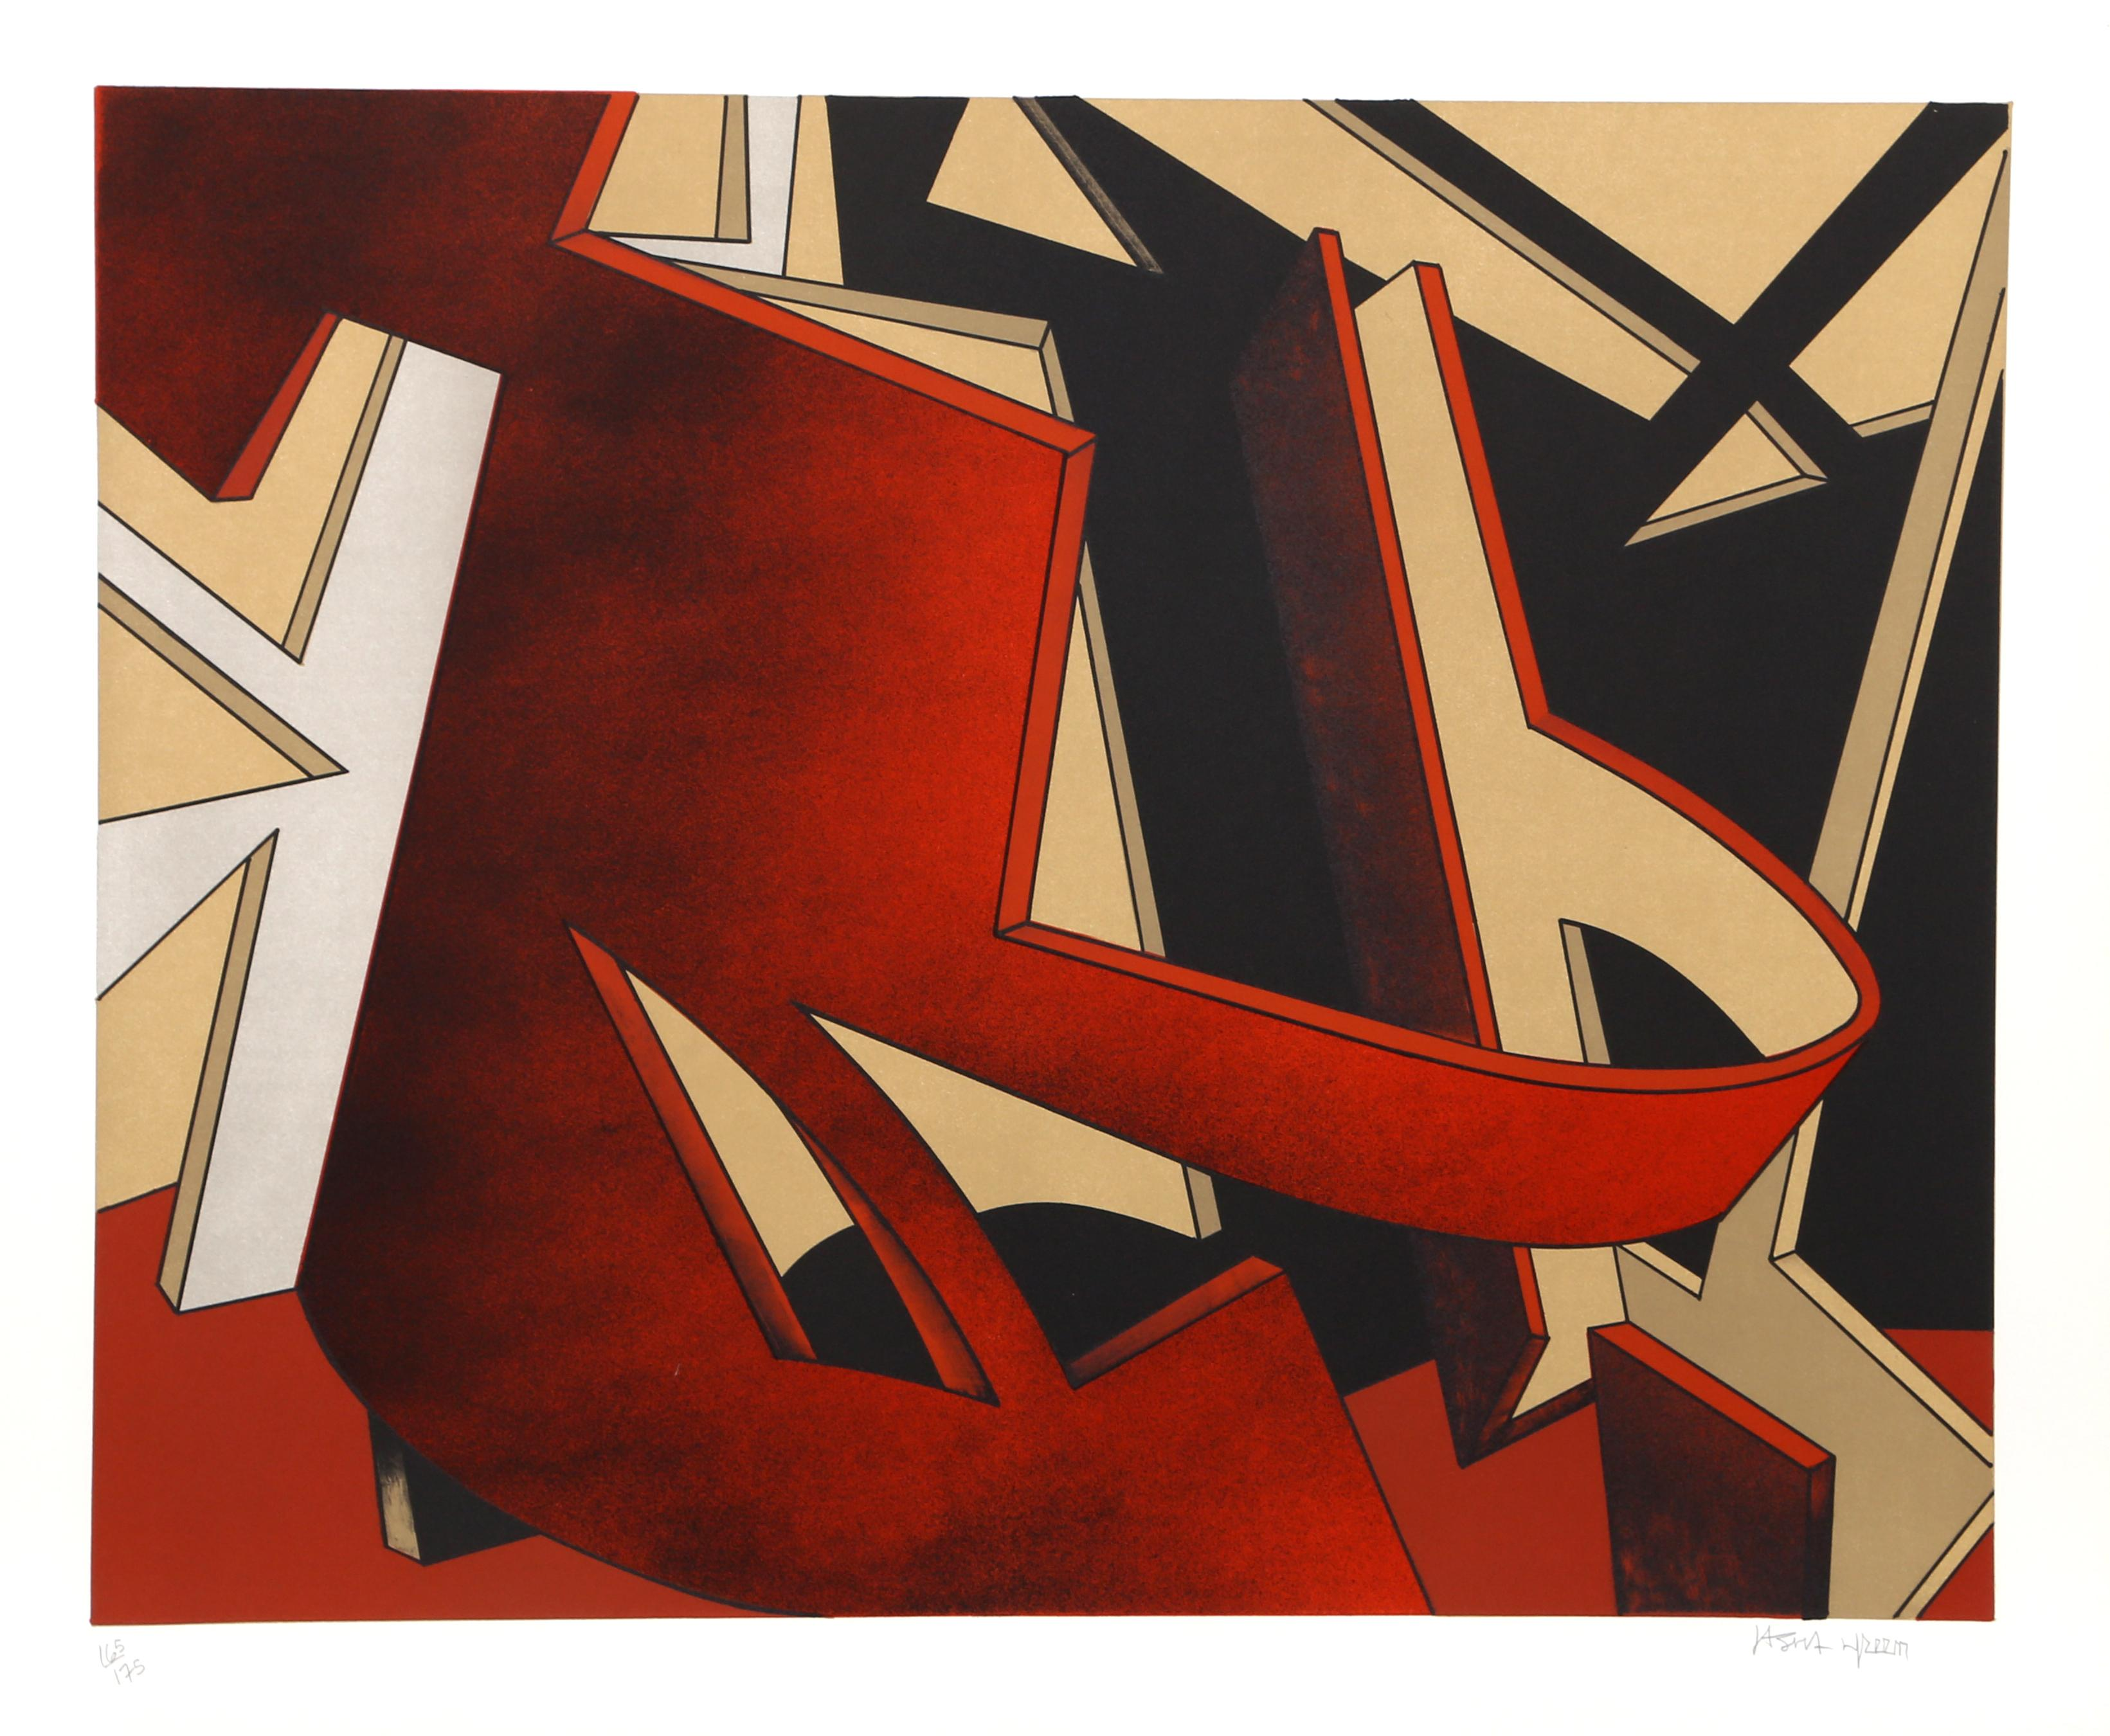 Geometric Abstract Lithograph by Jasha Green